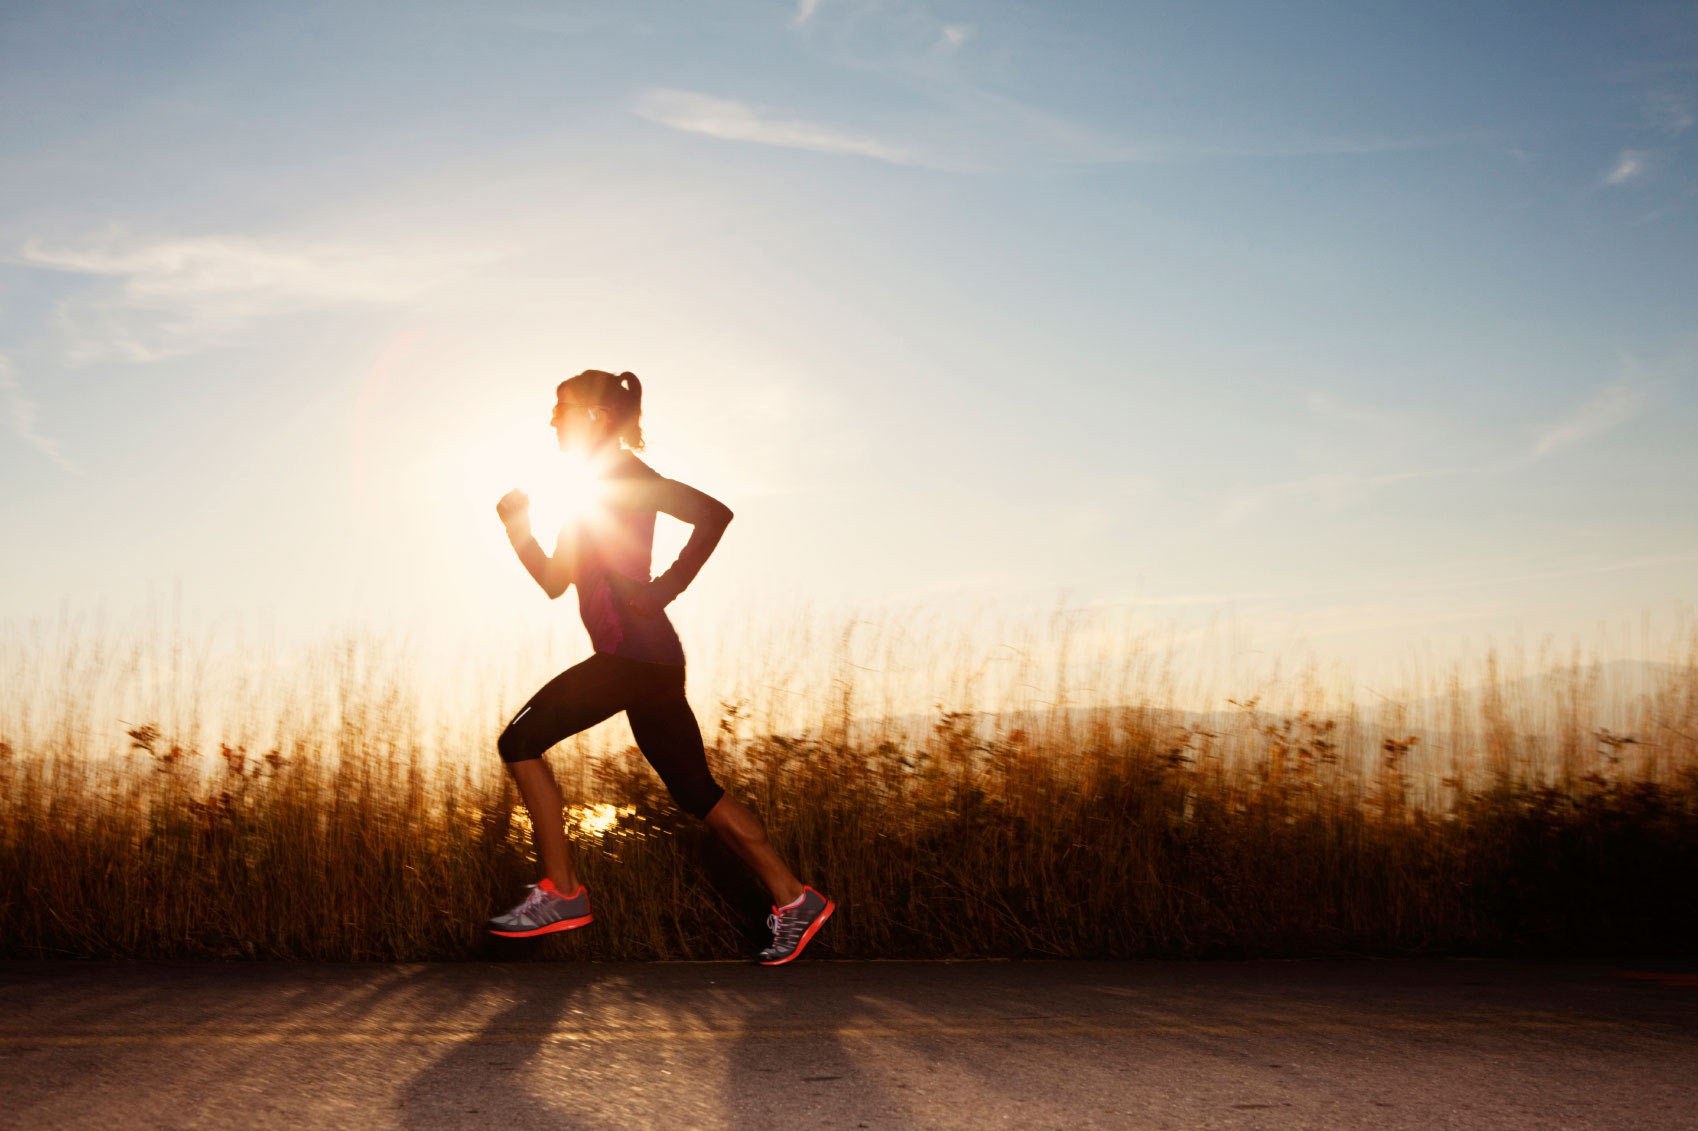 Pain and Running | Can we have one without the other?